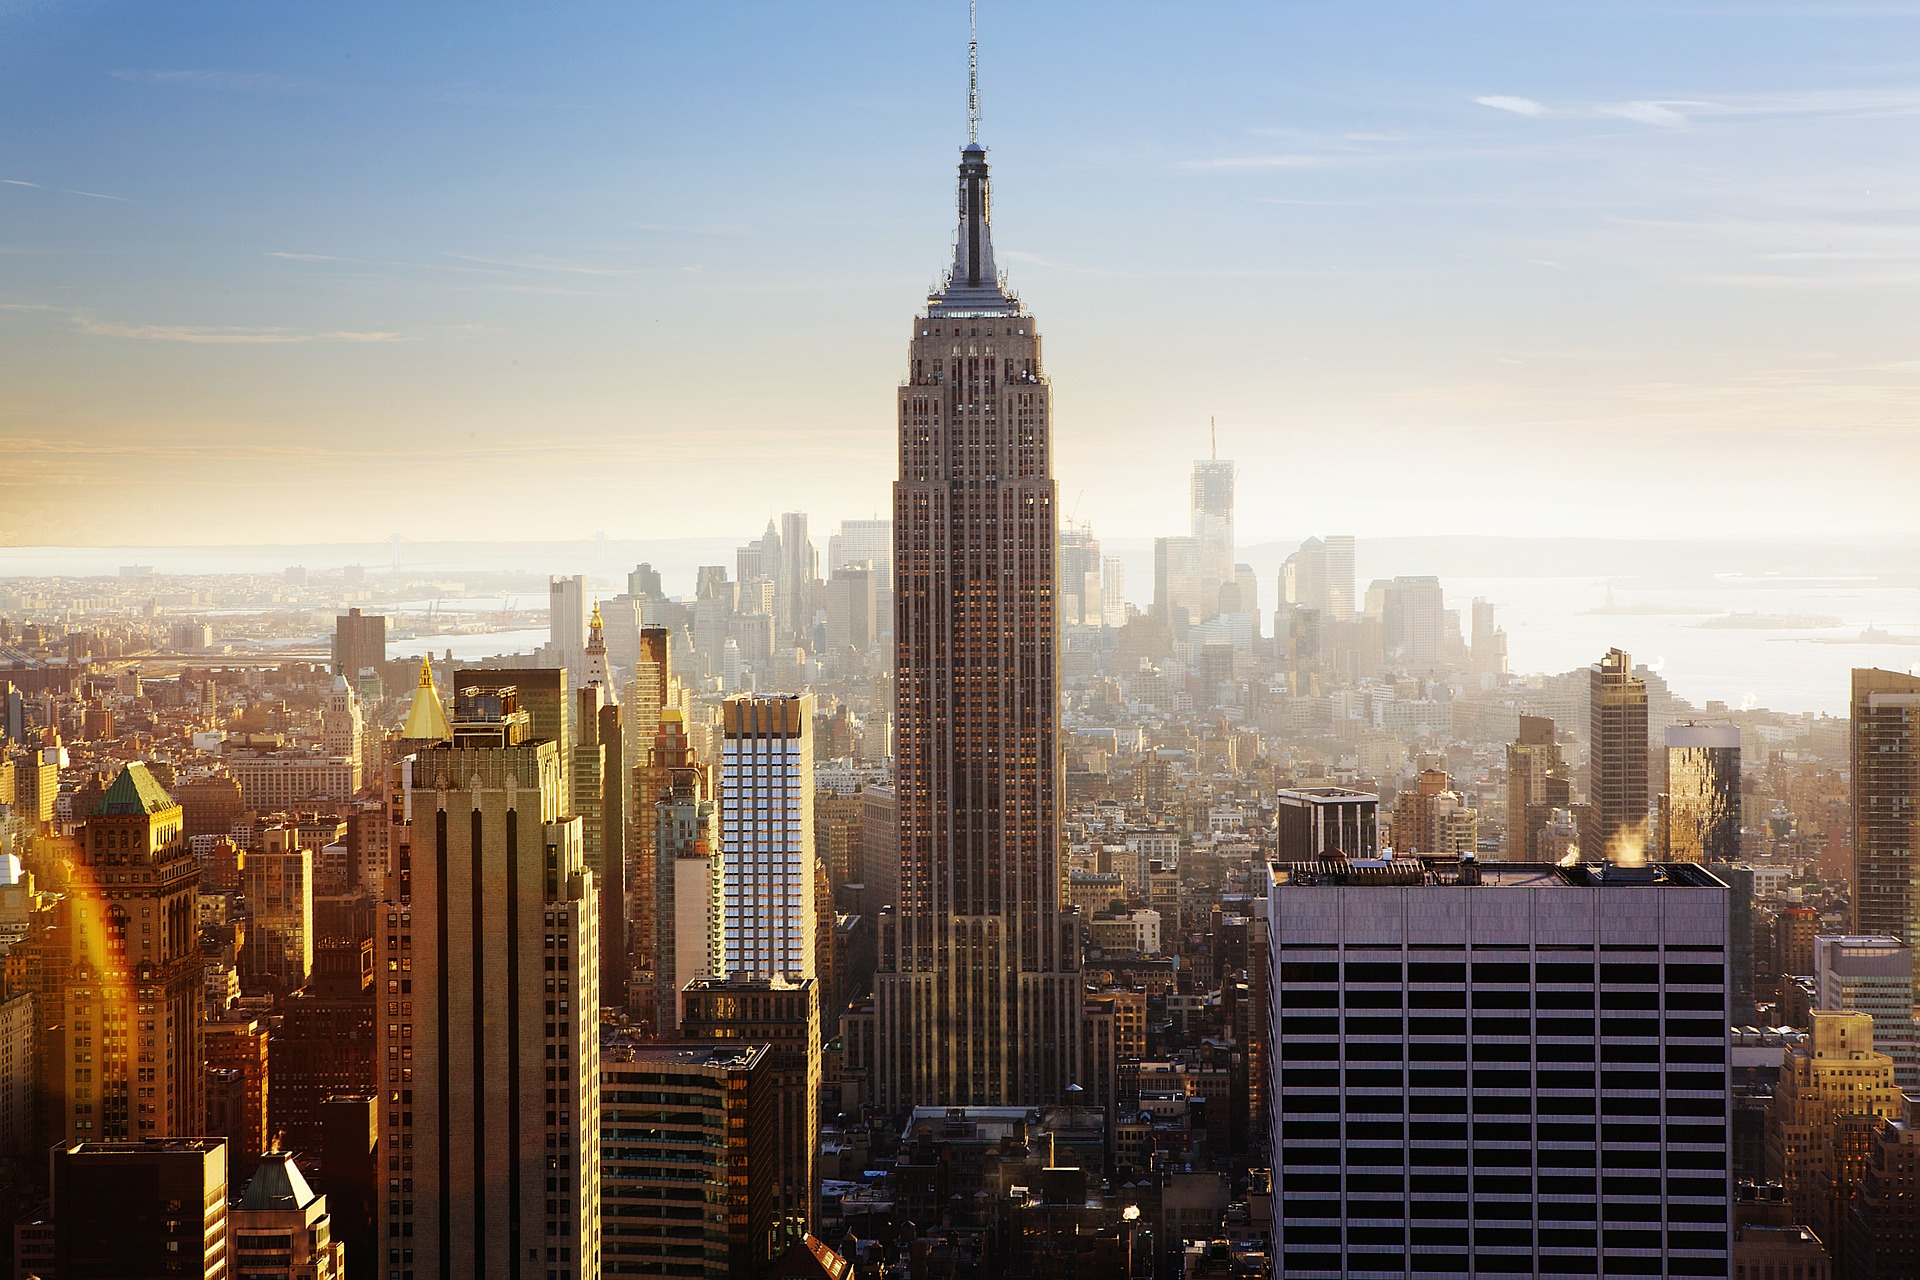 Empire State Building by Pixabay